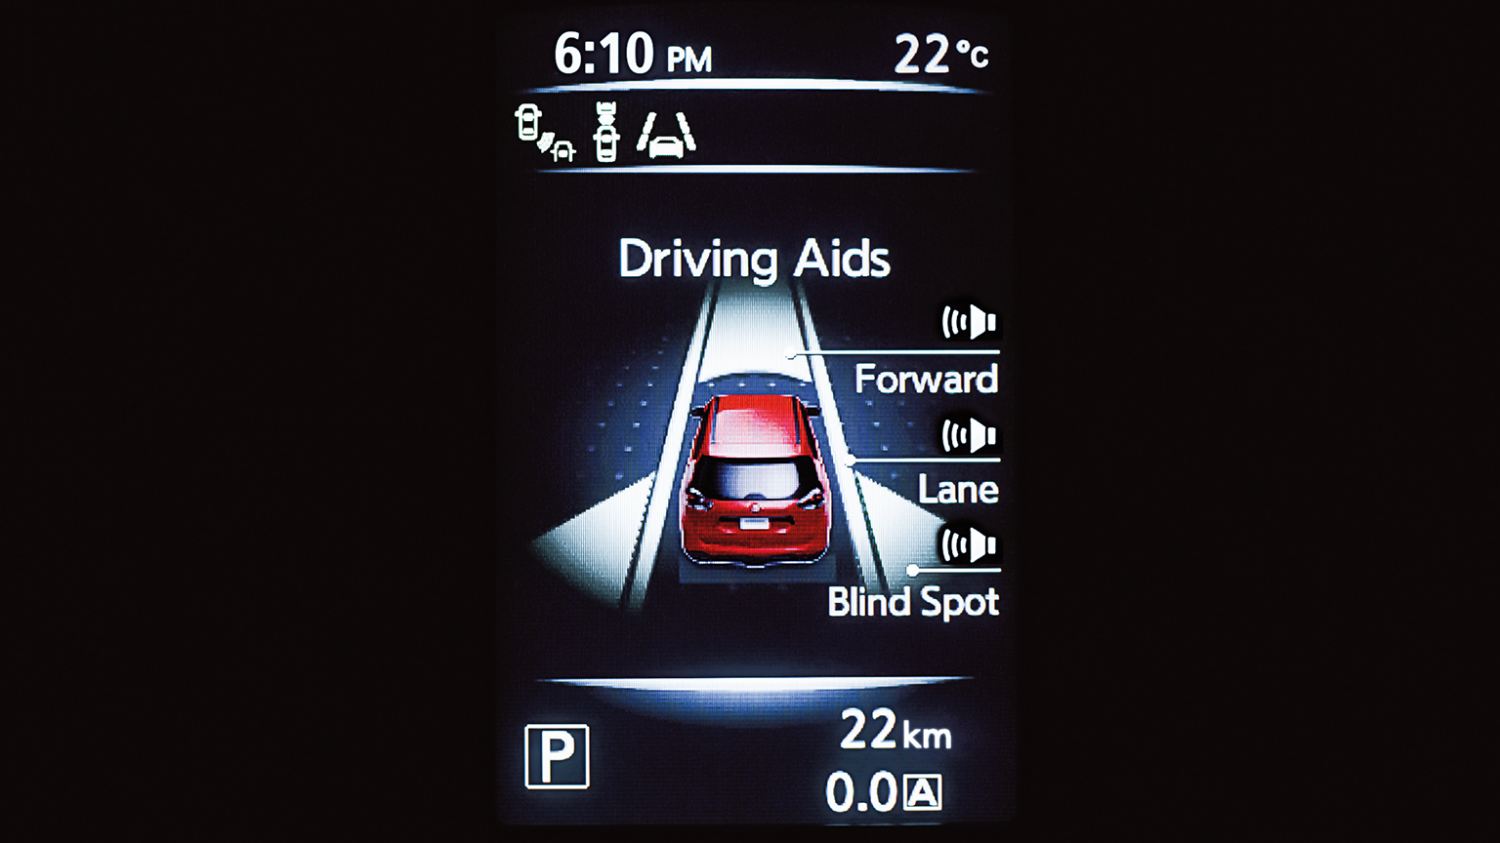 Driving aid display